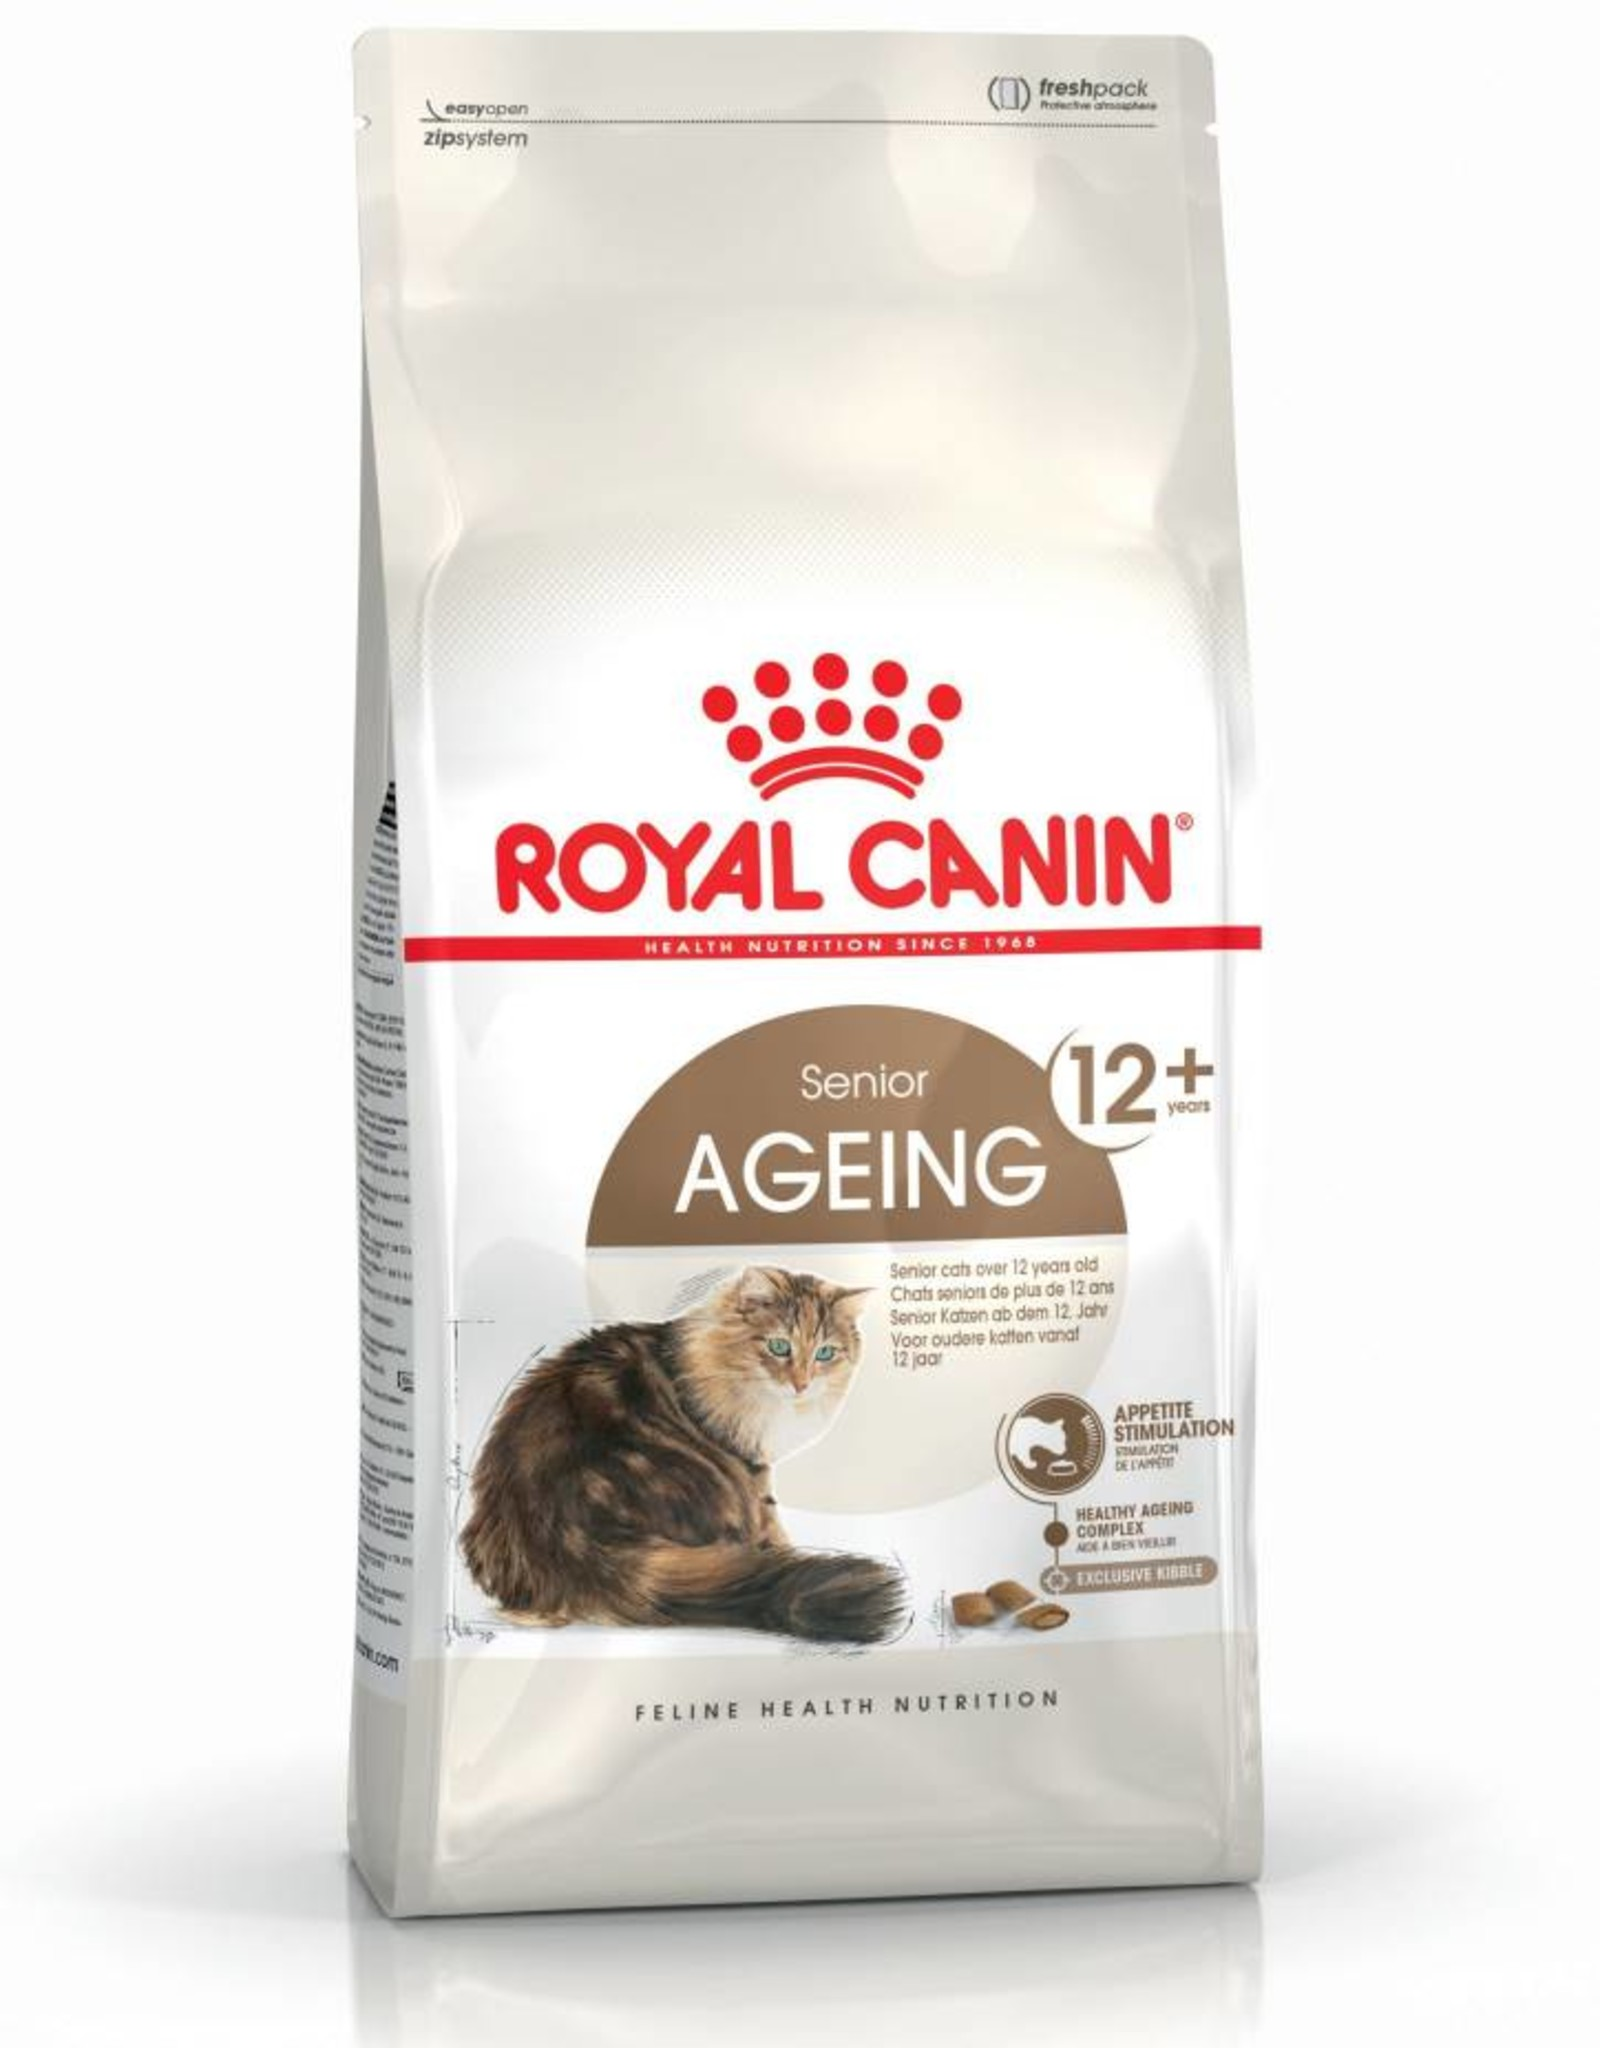 Royal Canin Ageing 12+ Senior Cat Dry Food